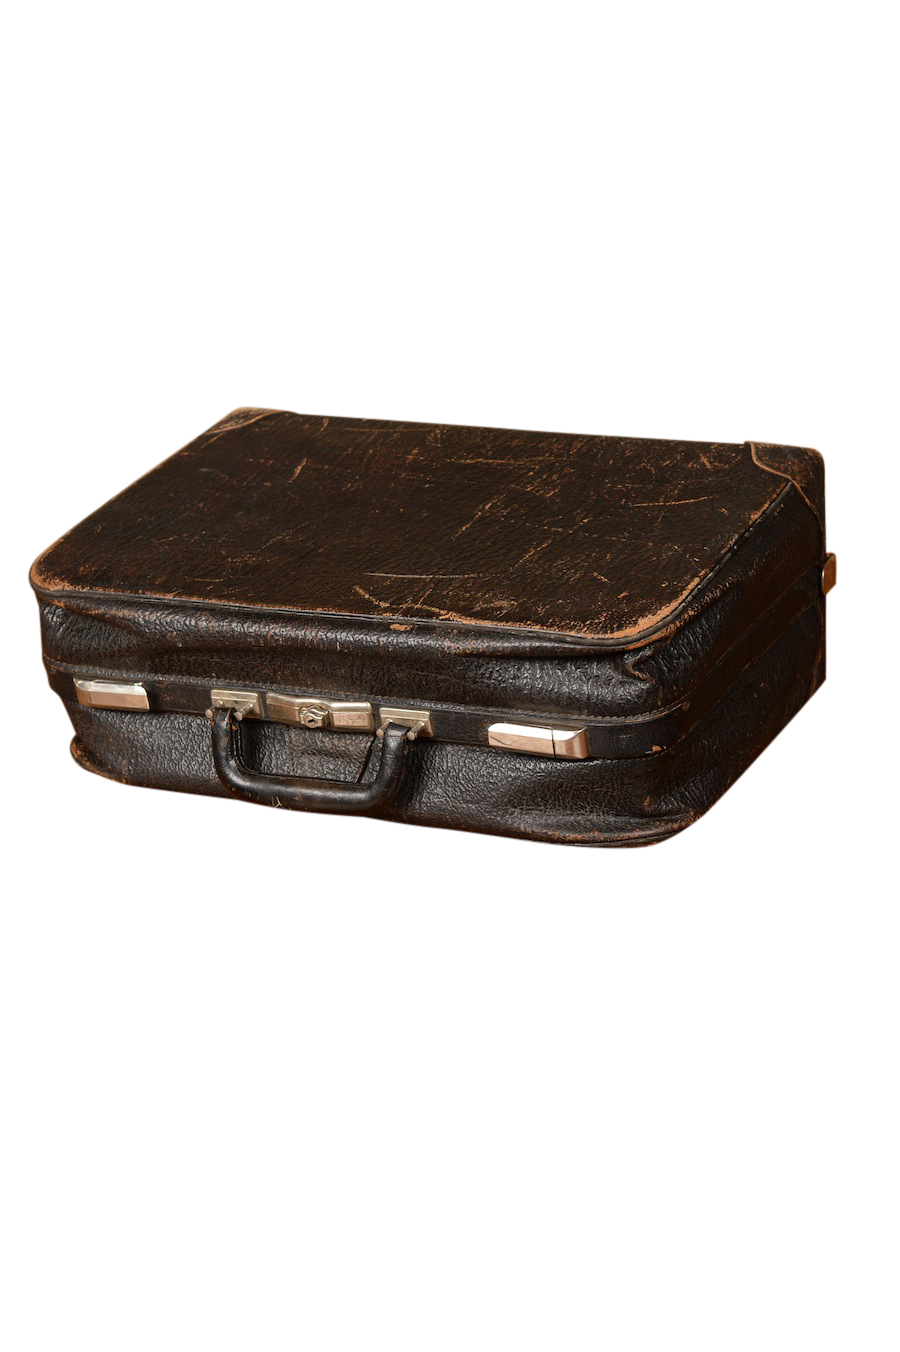 Thurston Black Suitcase